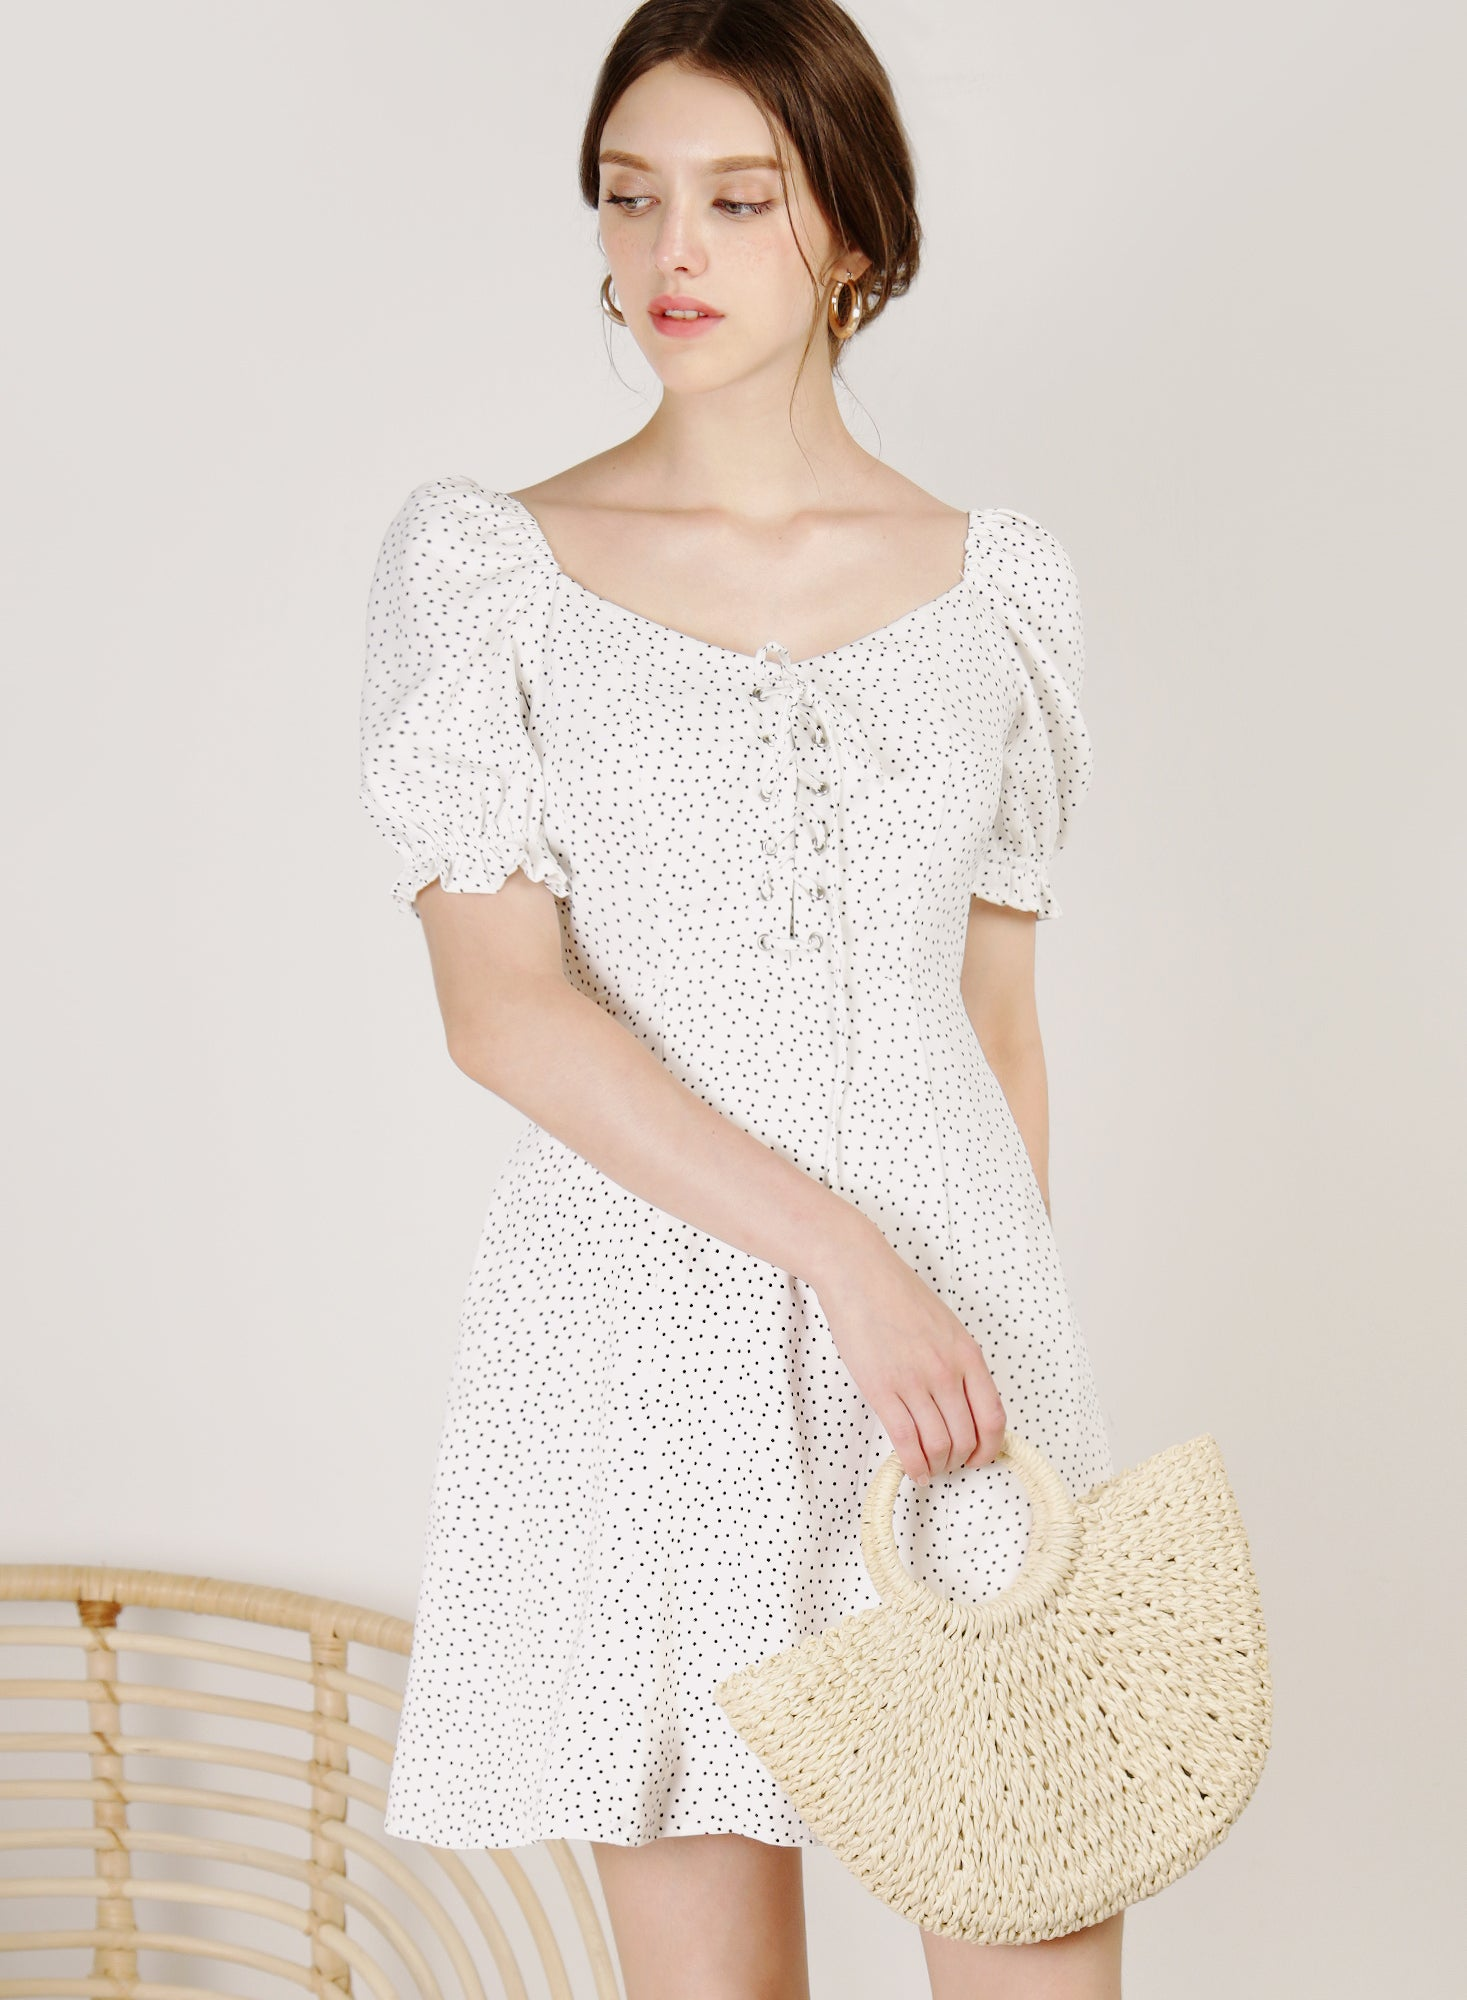 Dulce Lace Up Front Dress (White Polka)